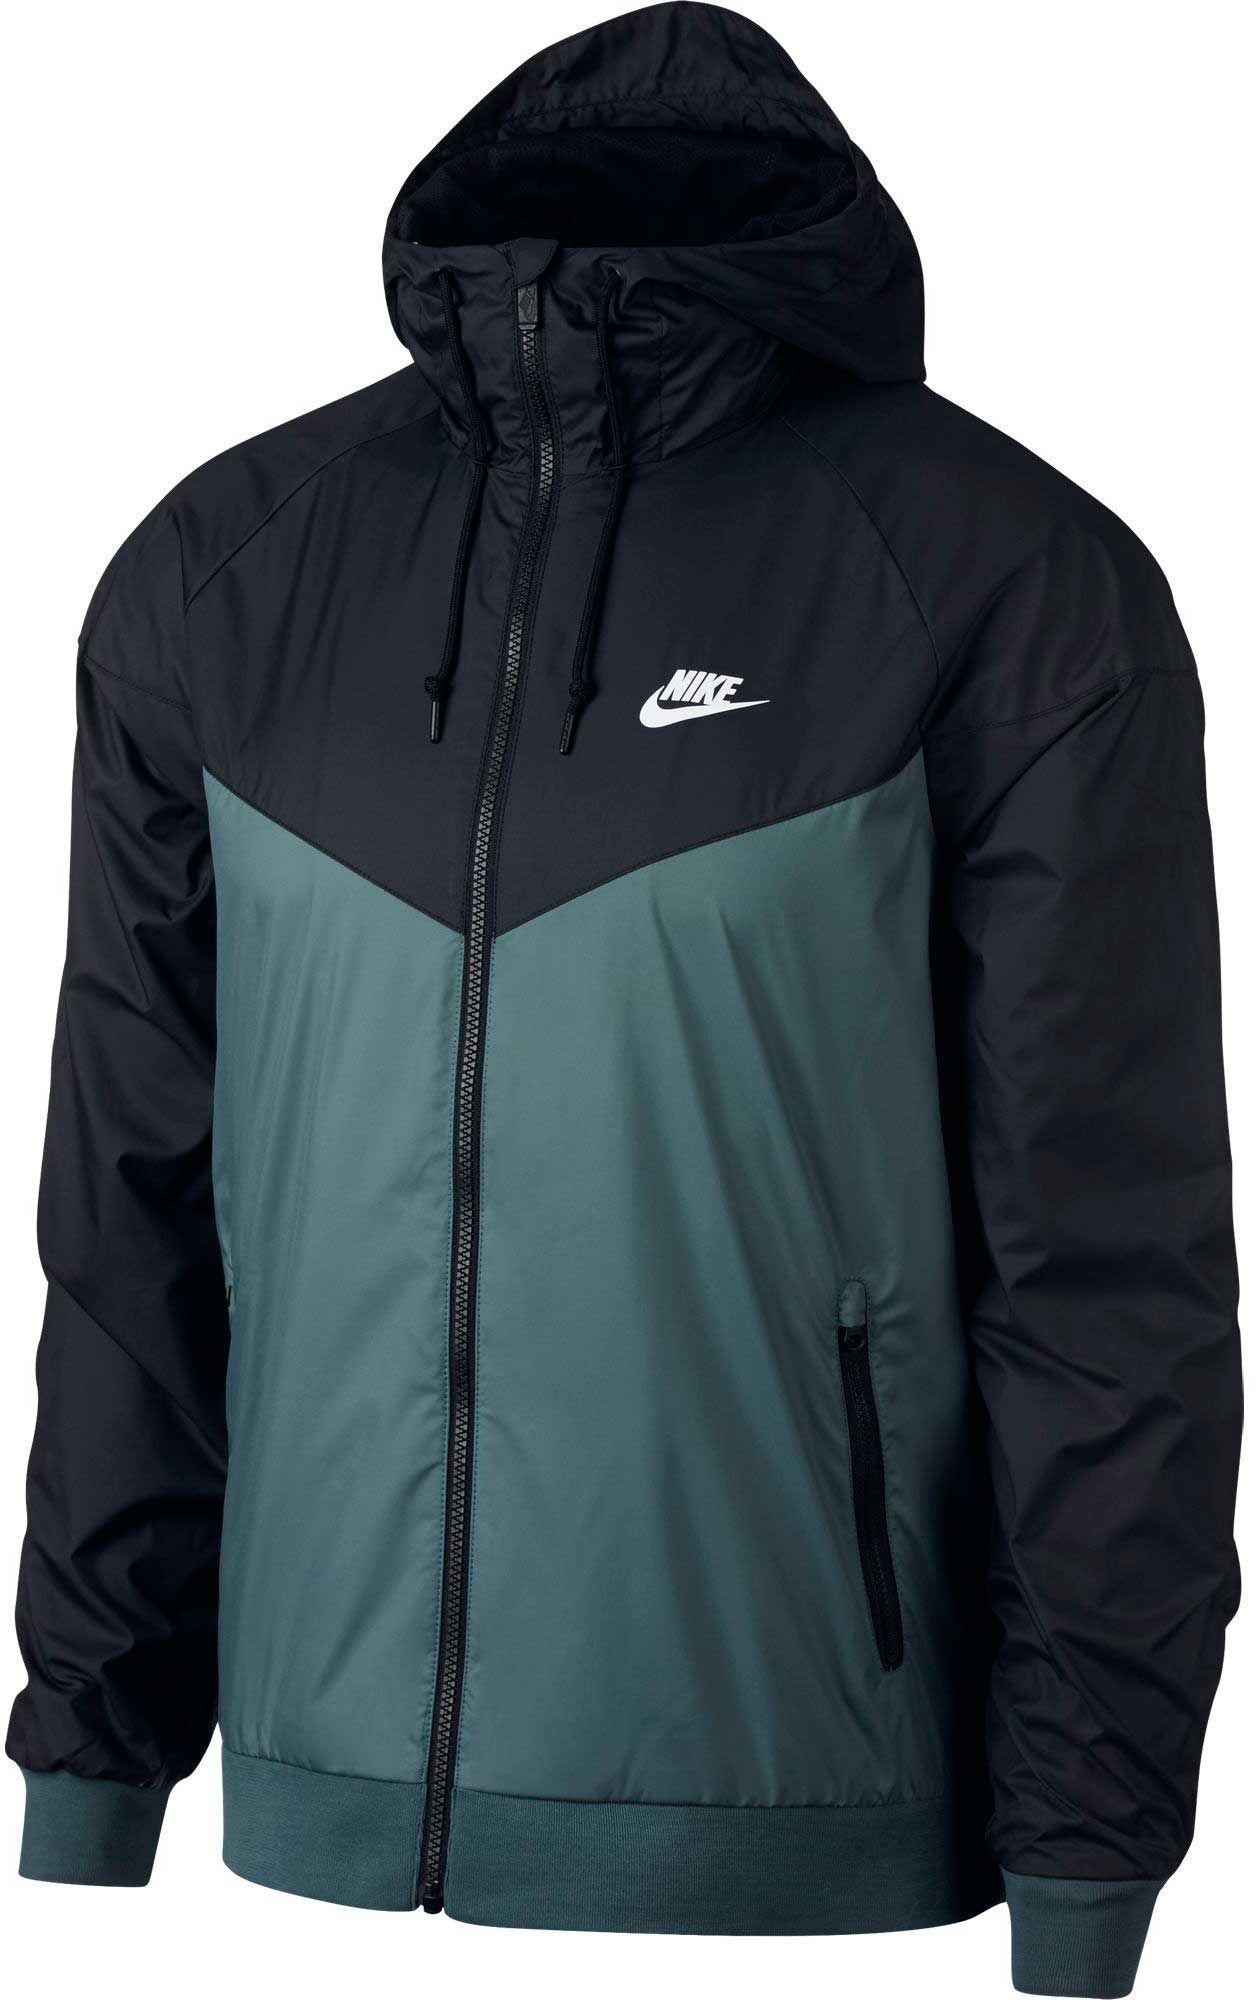 0845cbec35d4 Nike Men s Windrunner Full Zip Jacket